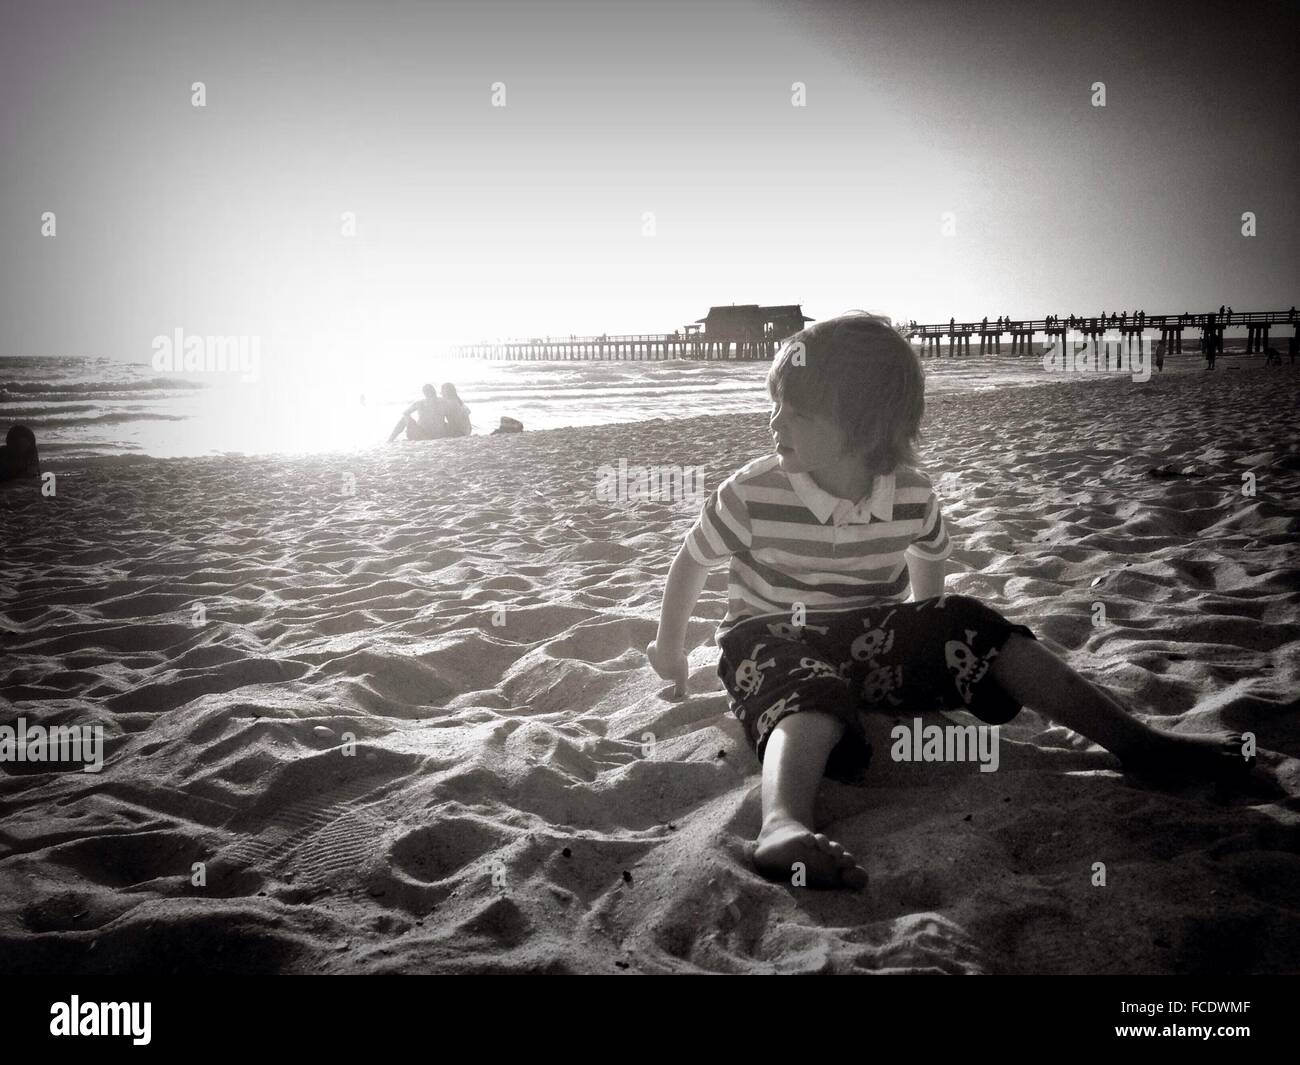 Boy Sitting On Beach Photo Stock